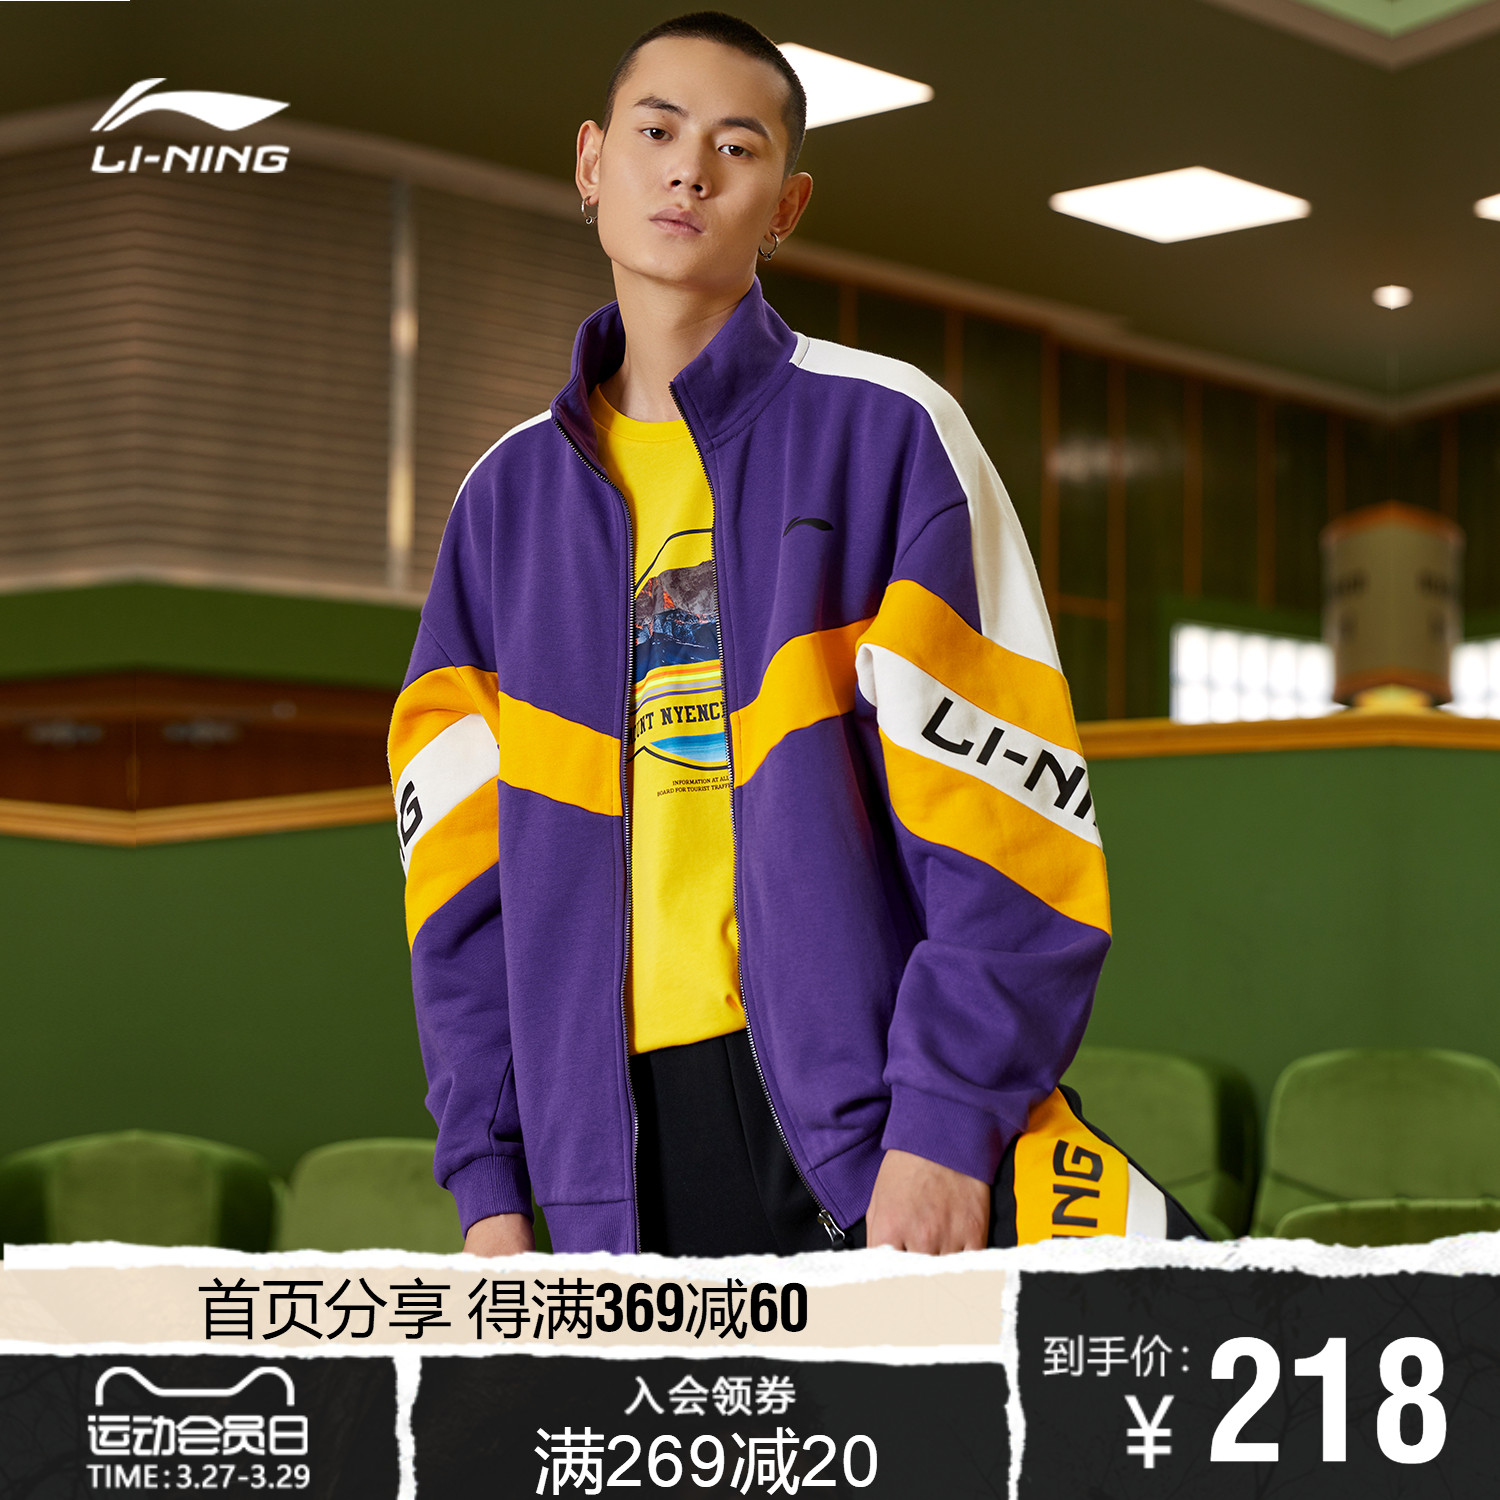 Li Ning sweater men's and women's long sleeve trend standing collar Sports Top loose knit cardigan coat